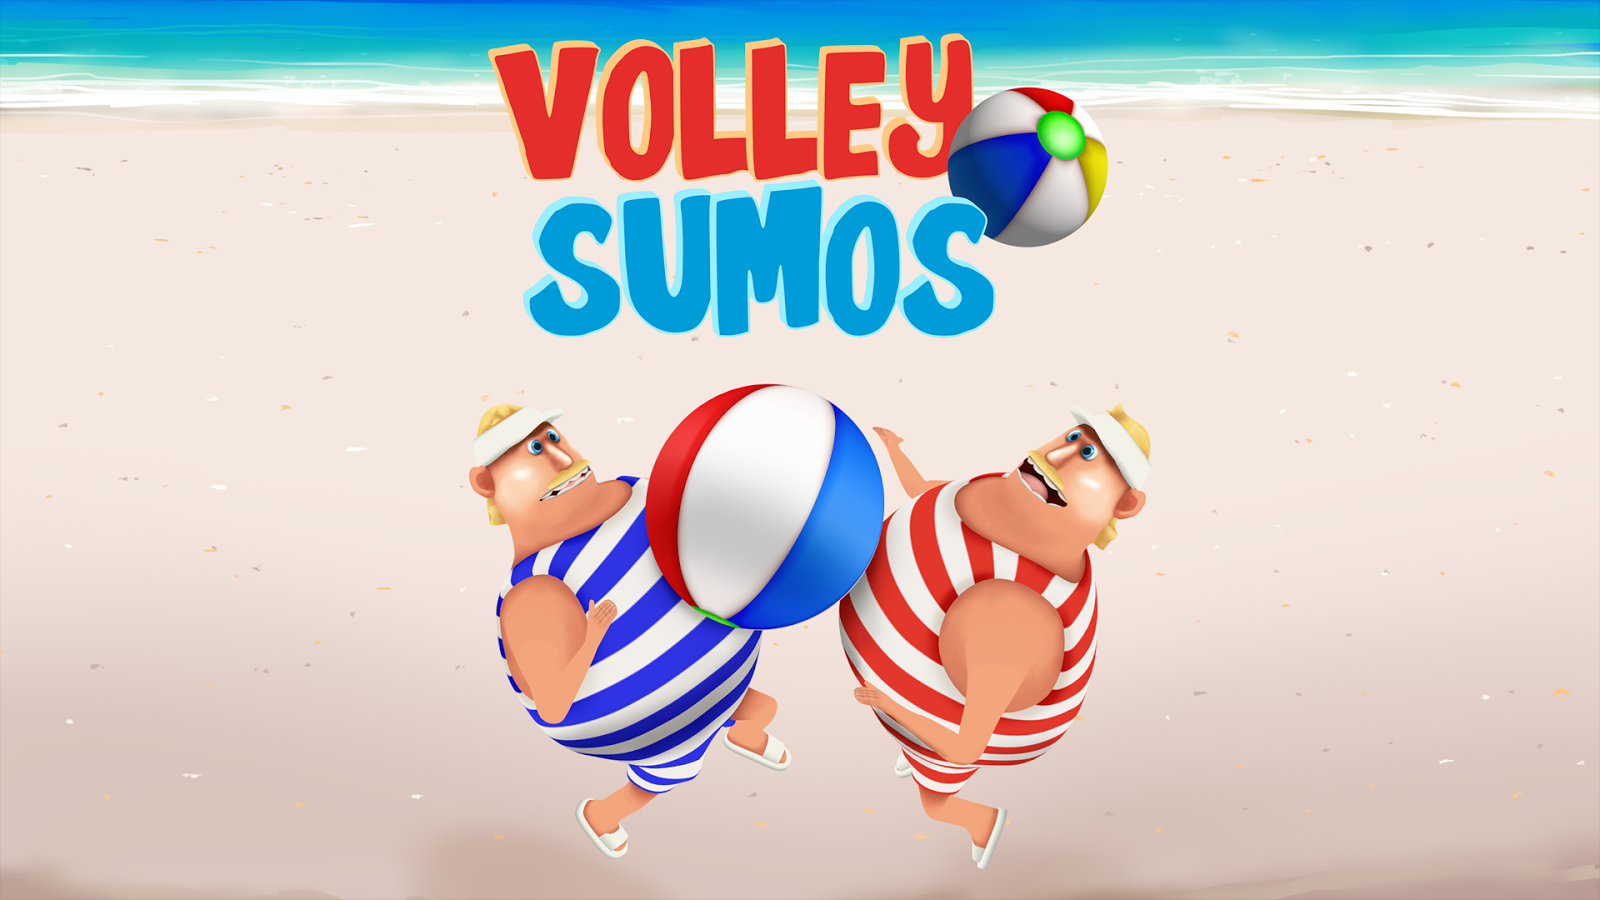 Volley Sumos - Versus game Screenshot 4